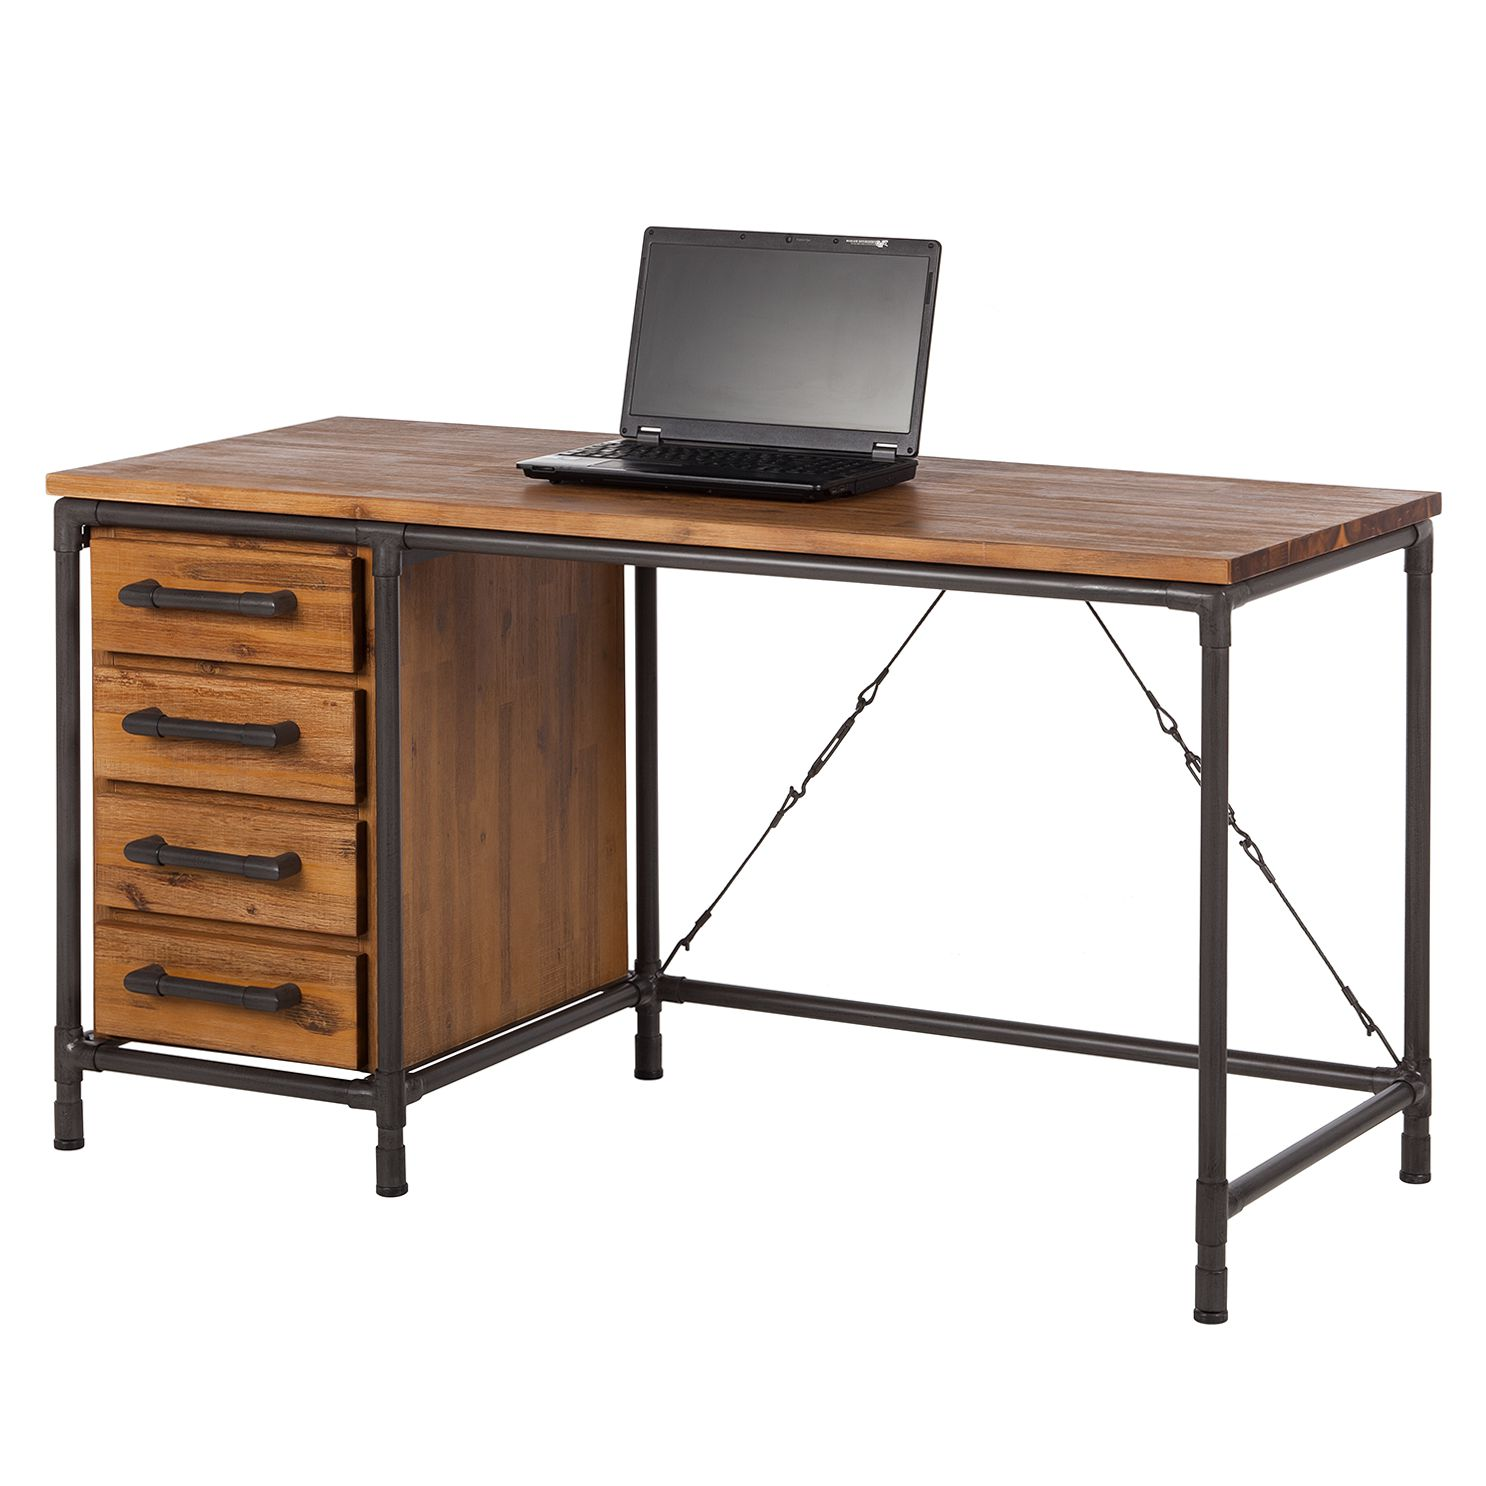 bureau atelier acacia partiellement massif m tal ars manufacti par ars manufacti chez home24 fr. Black Bedroom Furniture Sets. Home Design Ideas